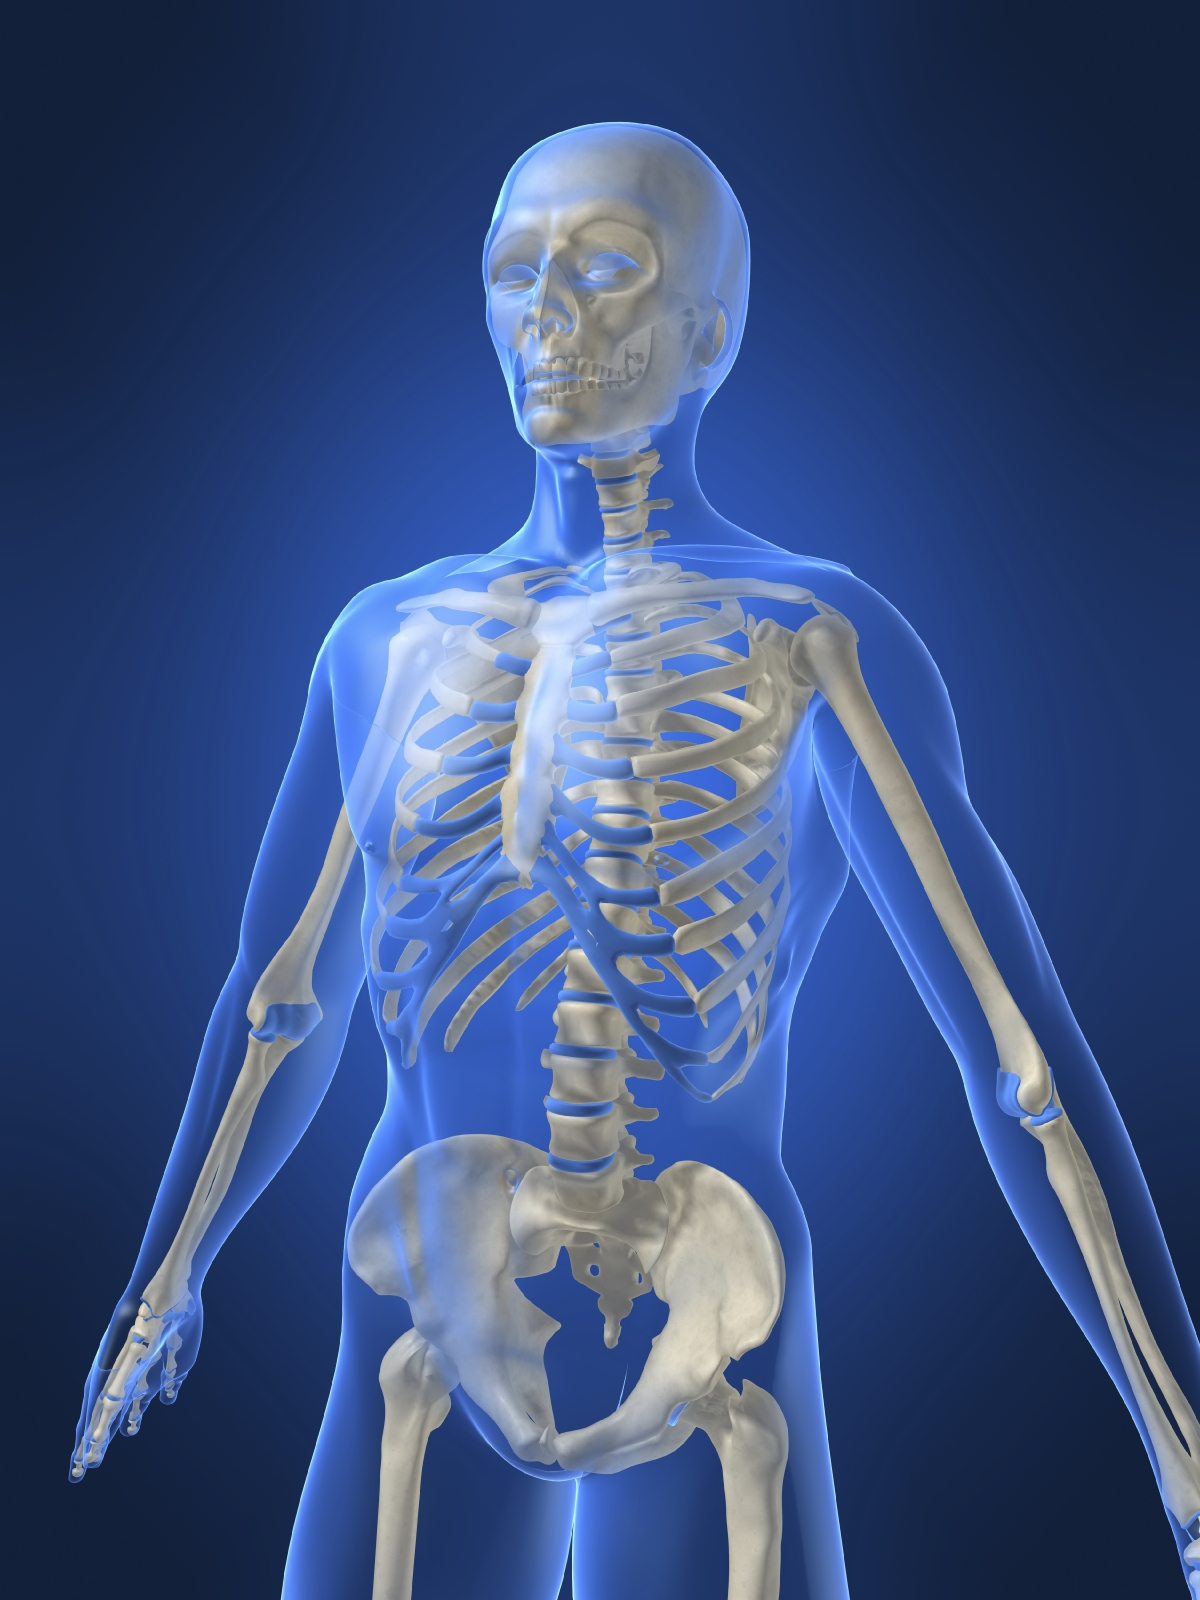 Bones And Muscles Homework Help Skeleton And Muscular System For